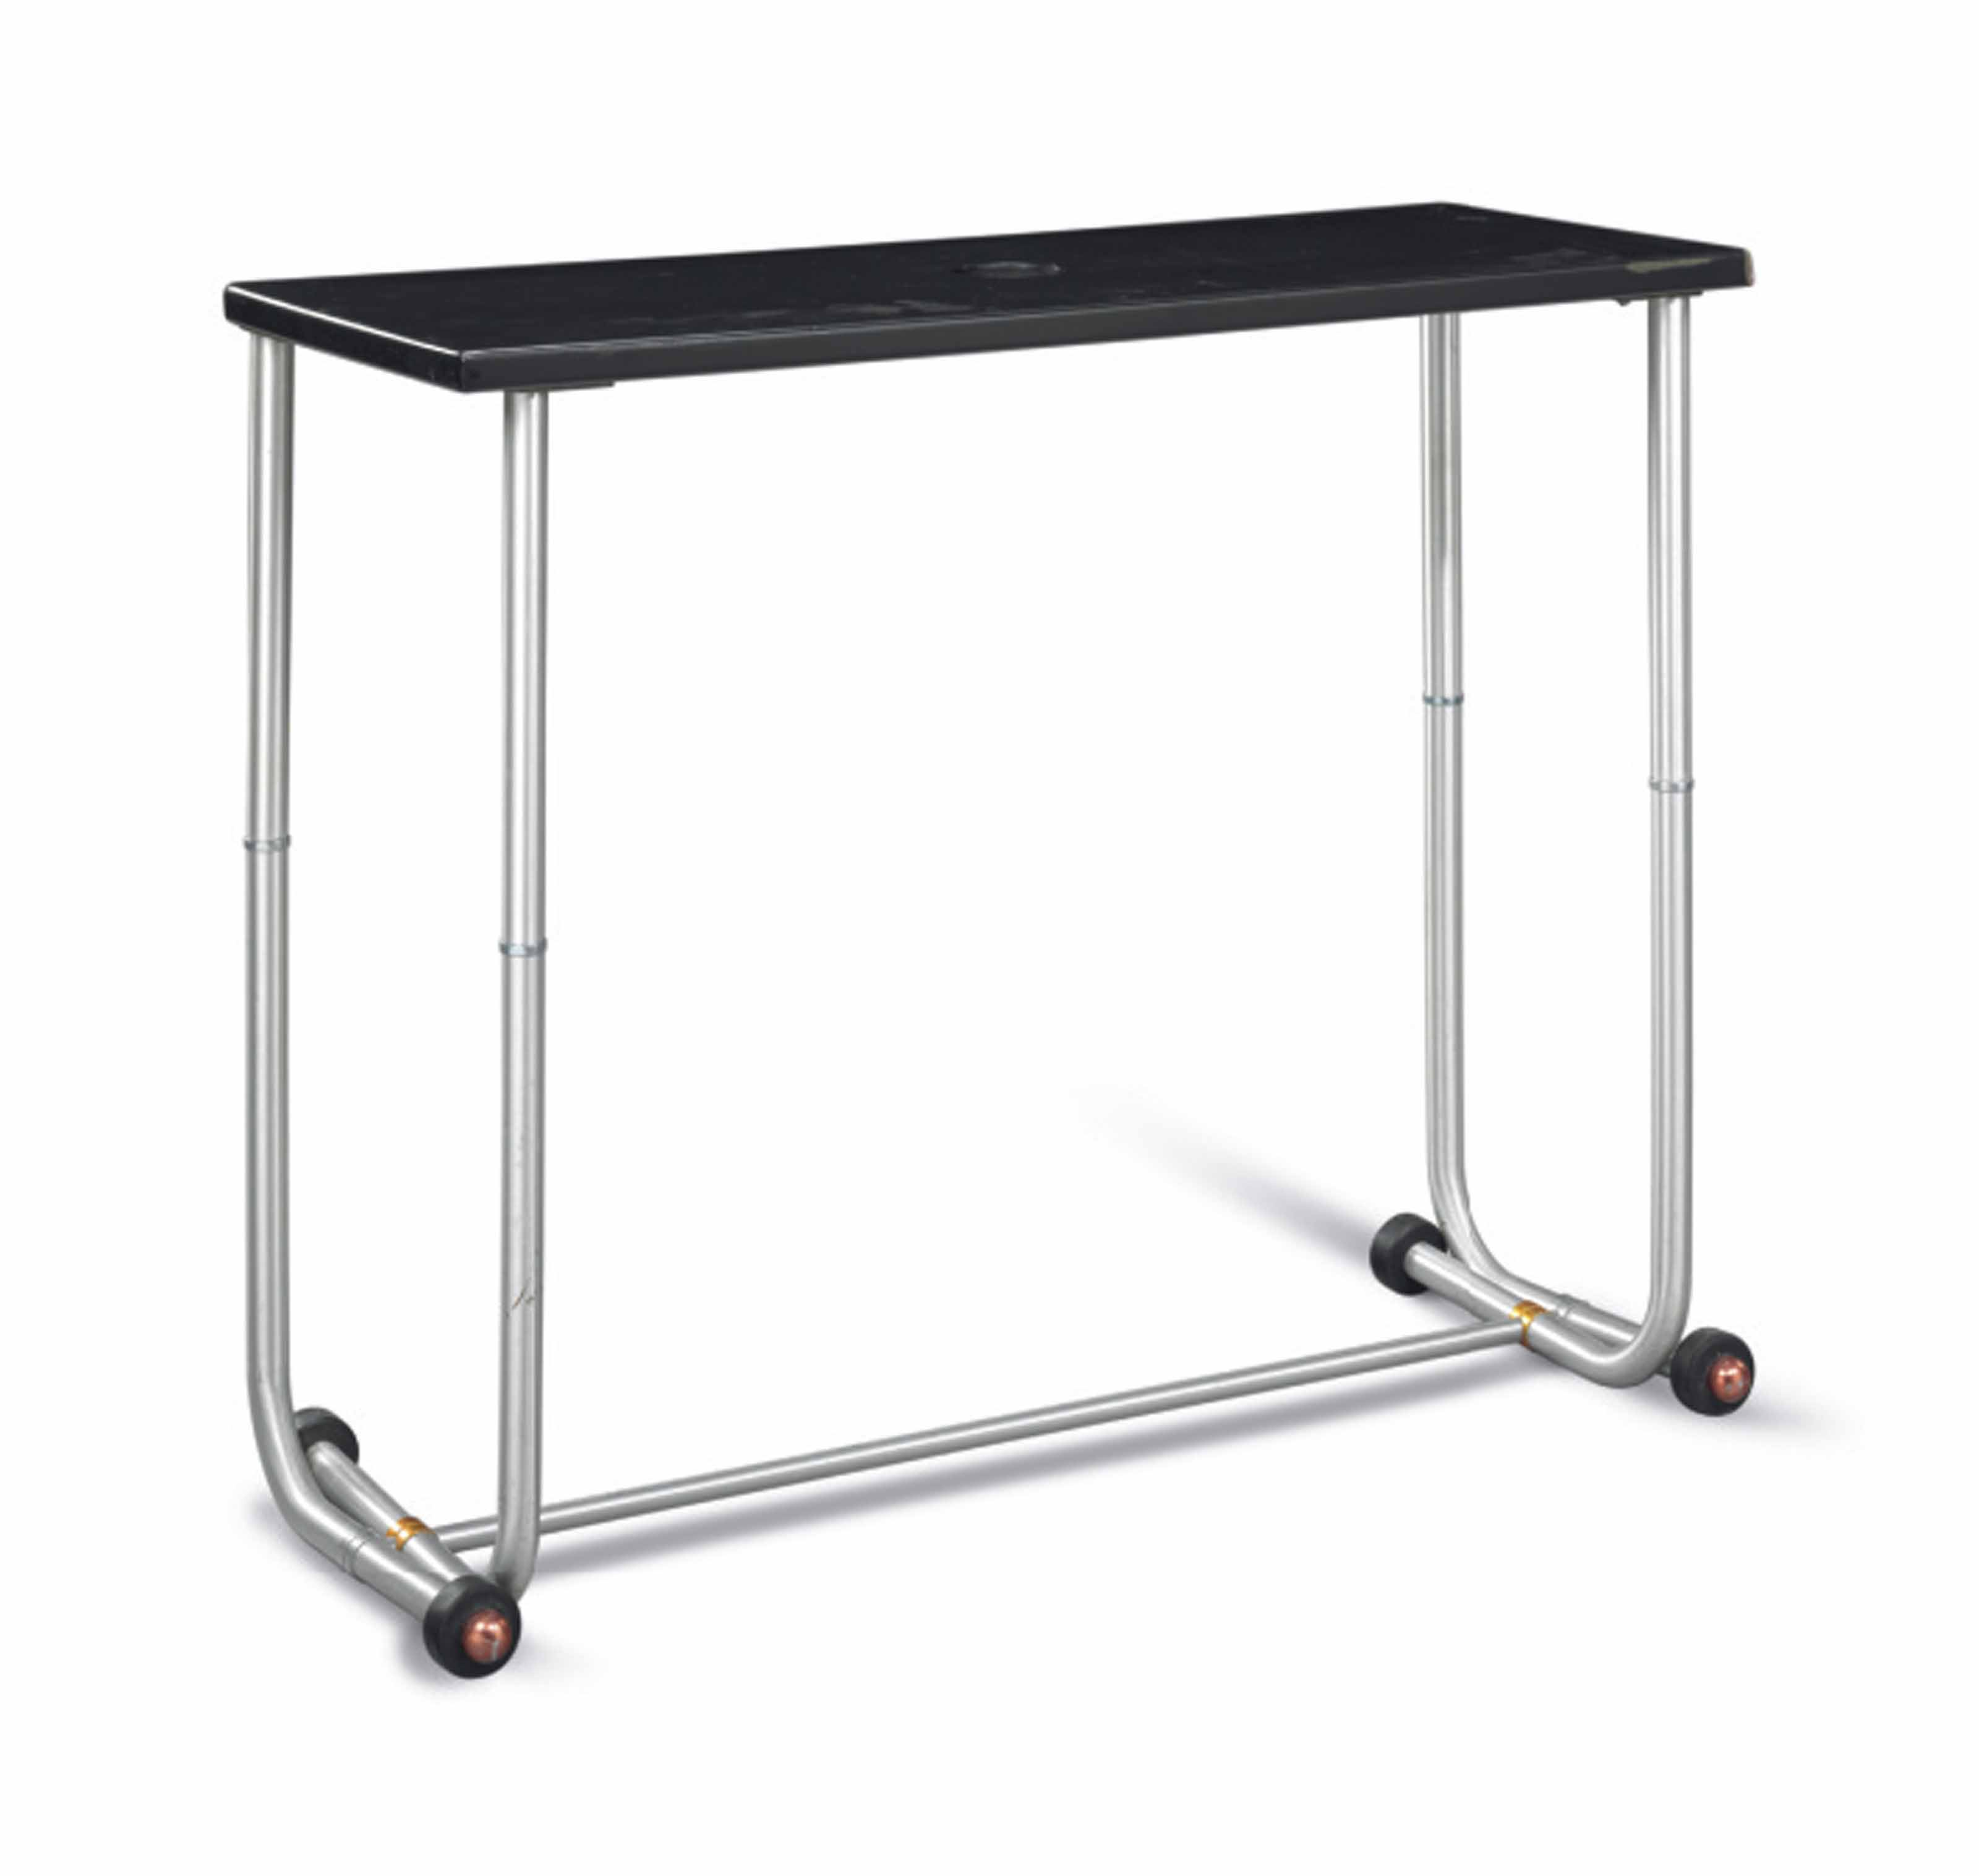 AN AMERICAN BRUSHED ALUMINUM AND EBONIZED SIDE TABLE